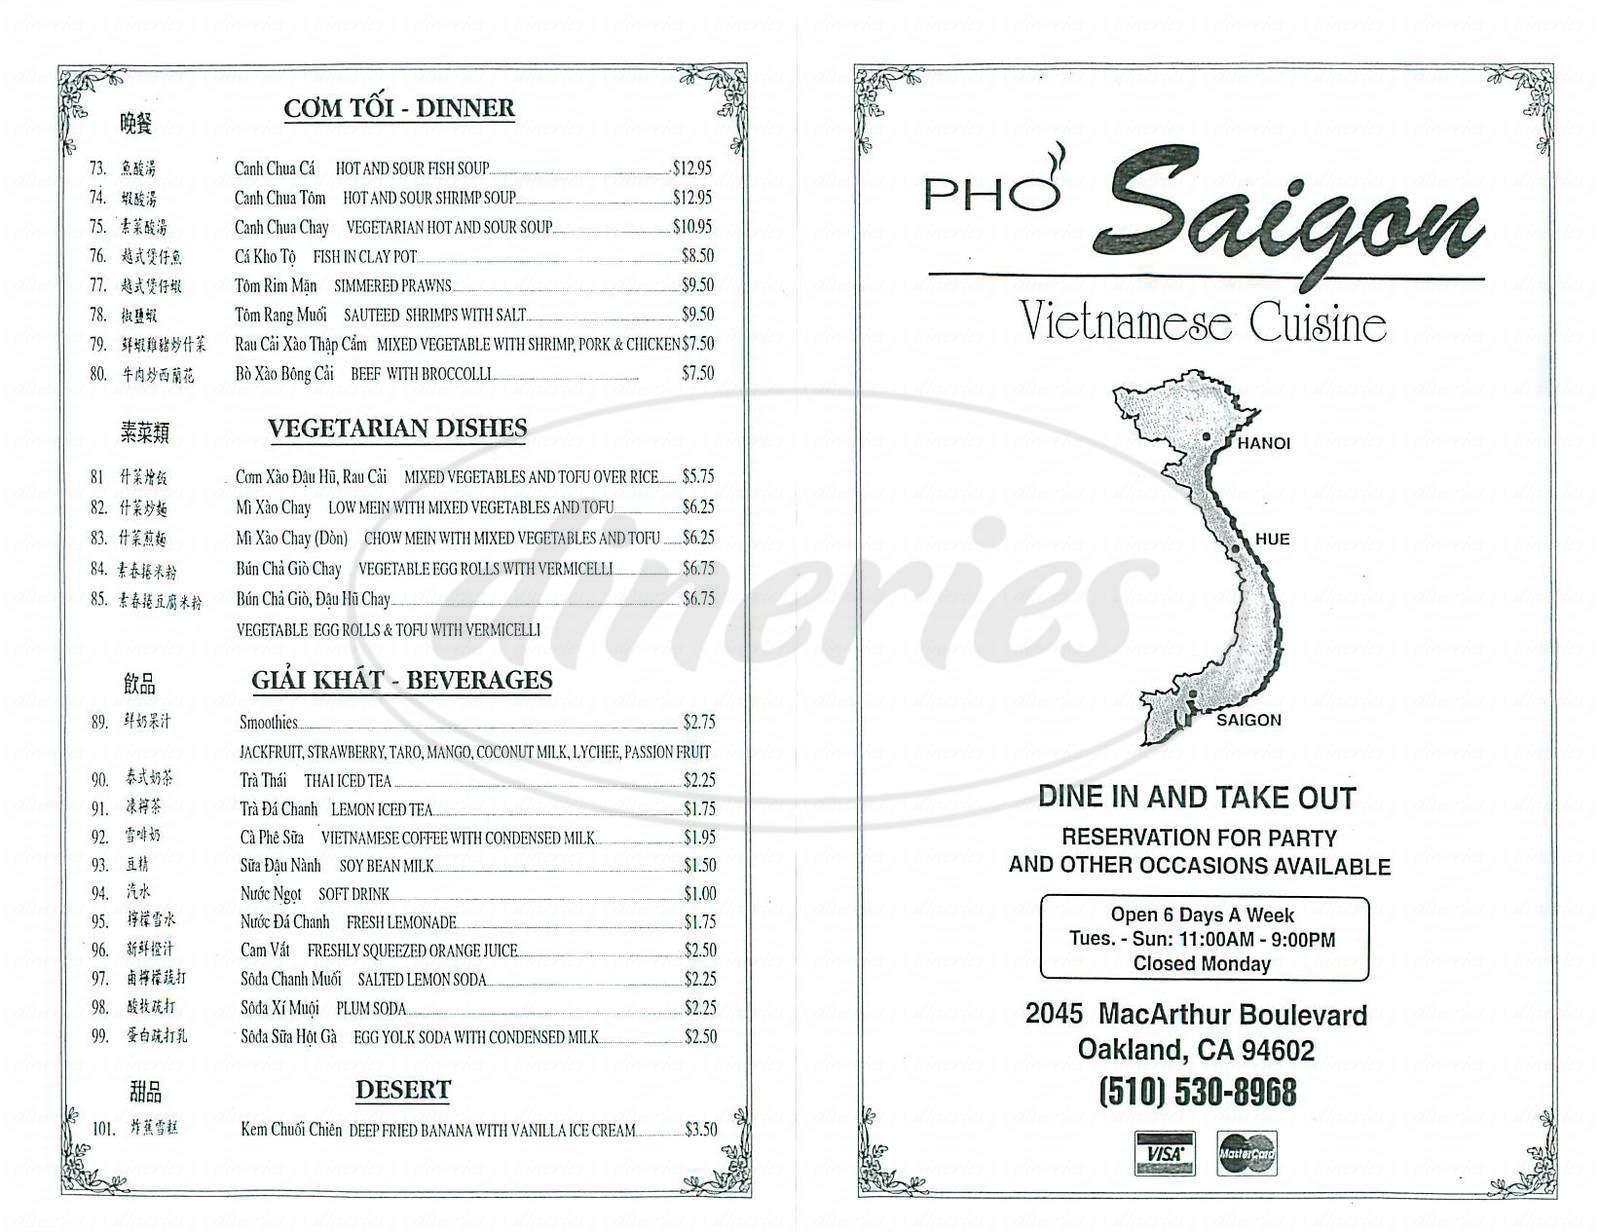 menu for Pho Saigon